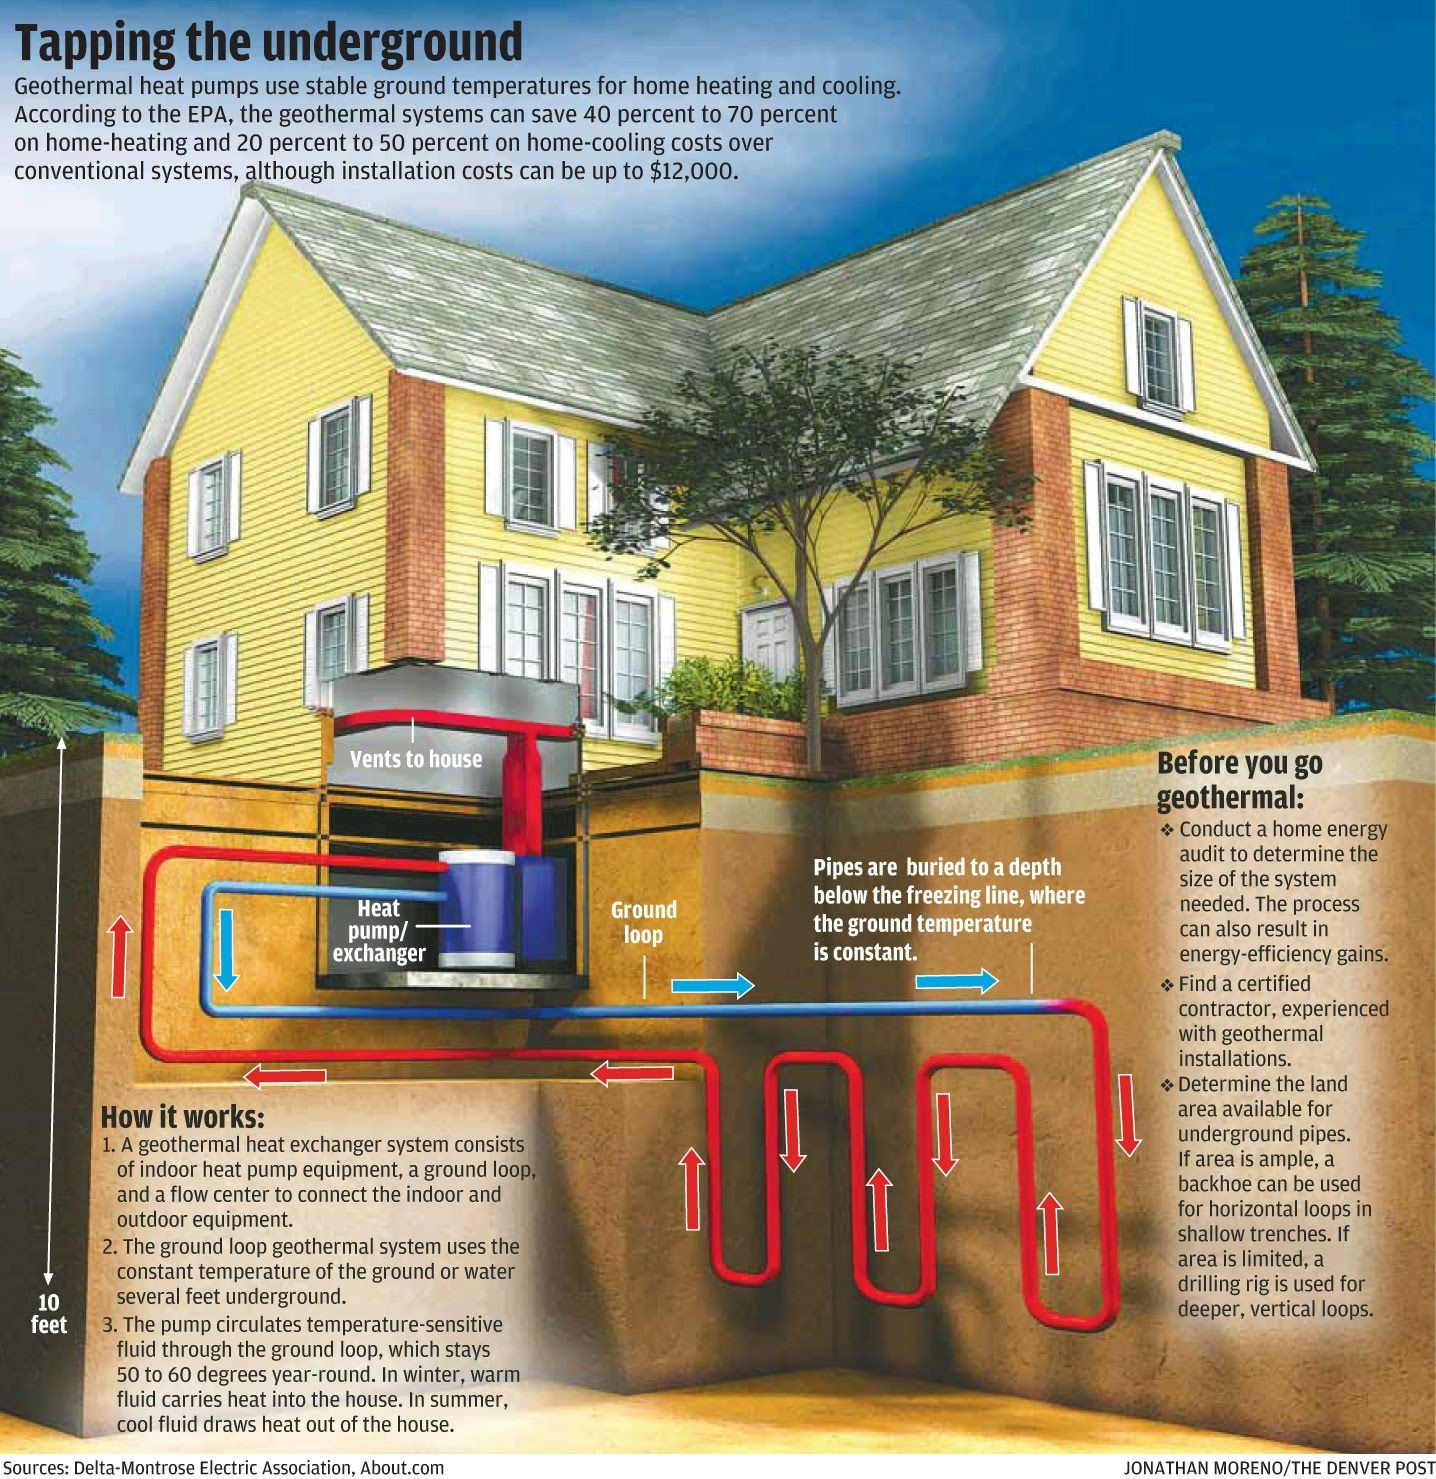 10 Myths About Geothermal Heating And Cooling Geothermal Heating